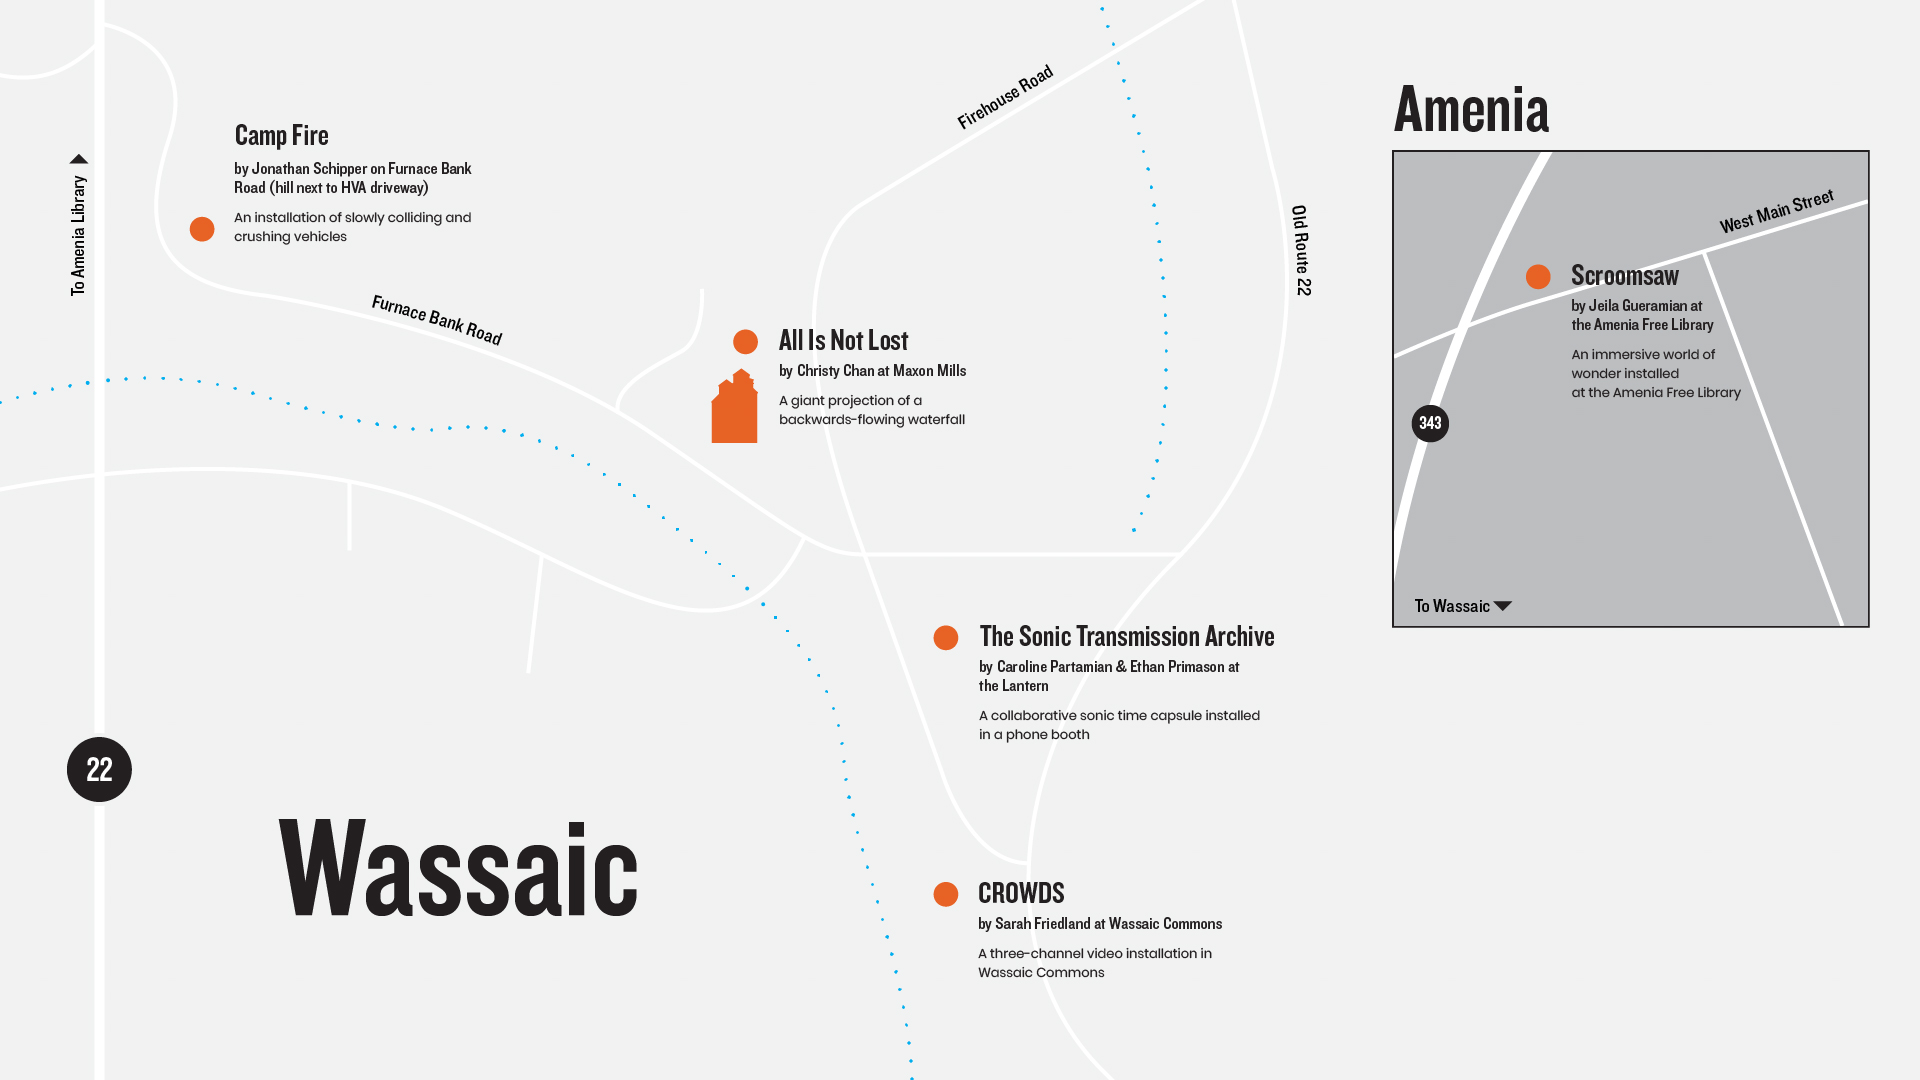 wassaic-project-exhibition-take-a-selfie-of-me-installations-map-2019-10-02-20-49-50.jpg